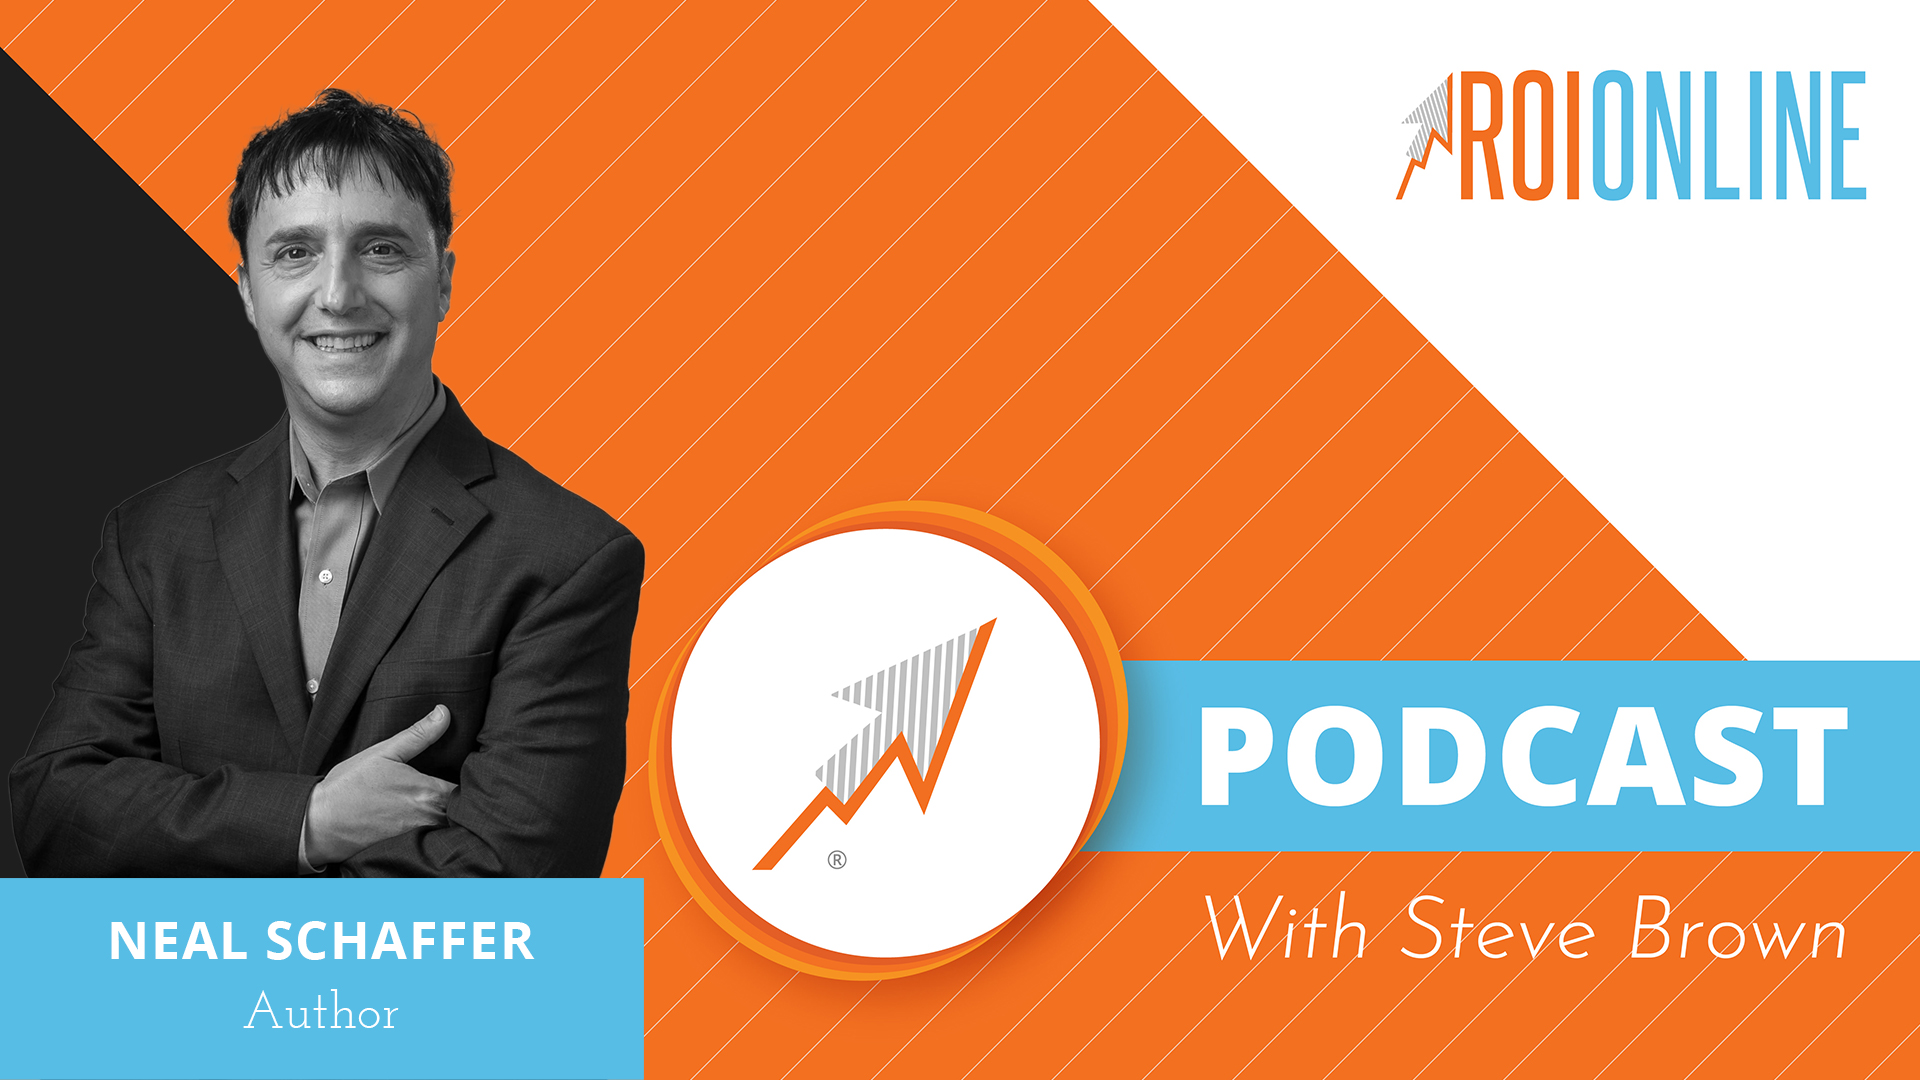 Author Neal Schaffer on The ROI Online Podcast